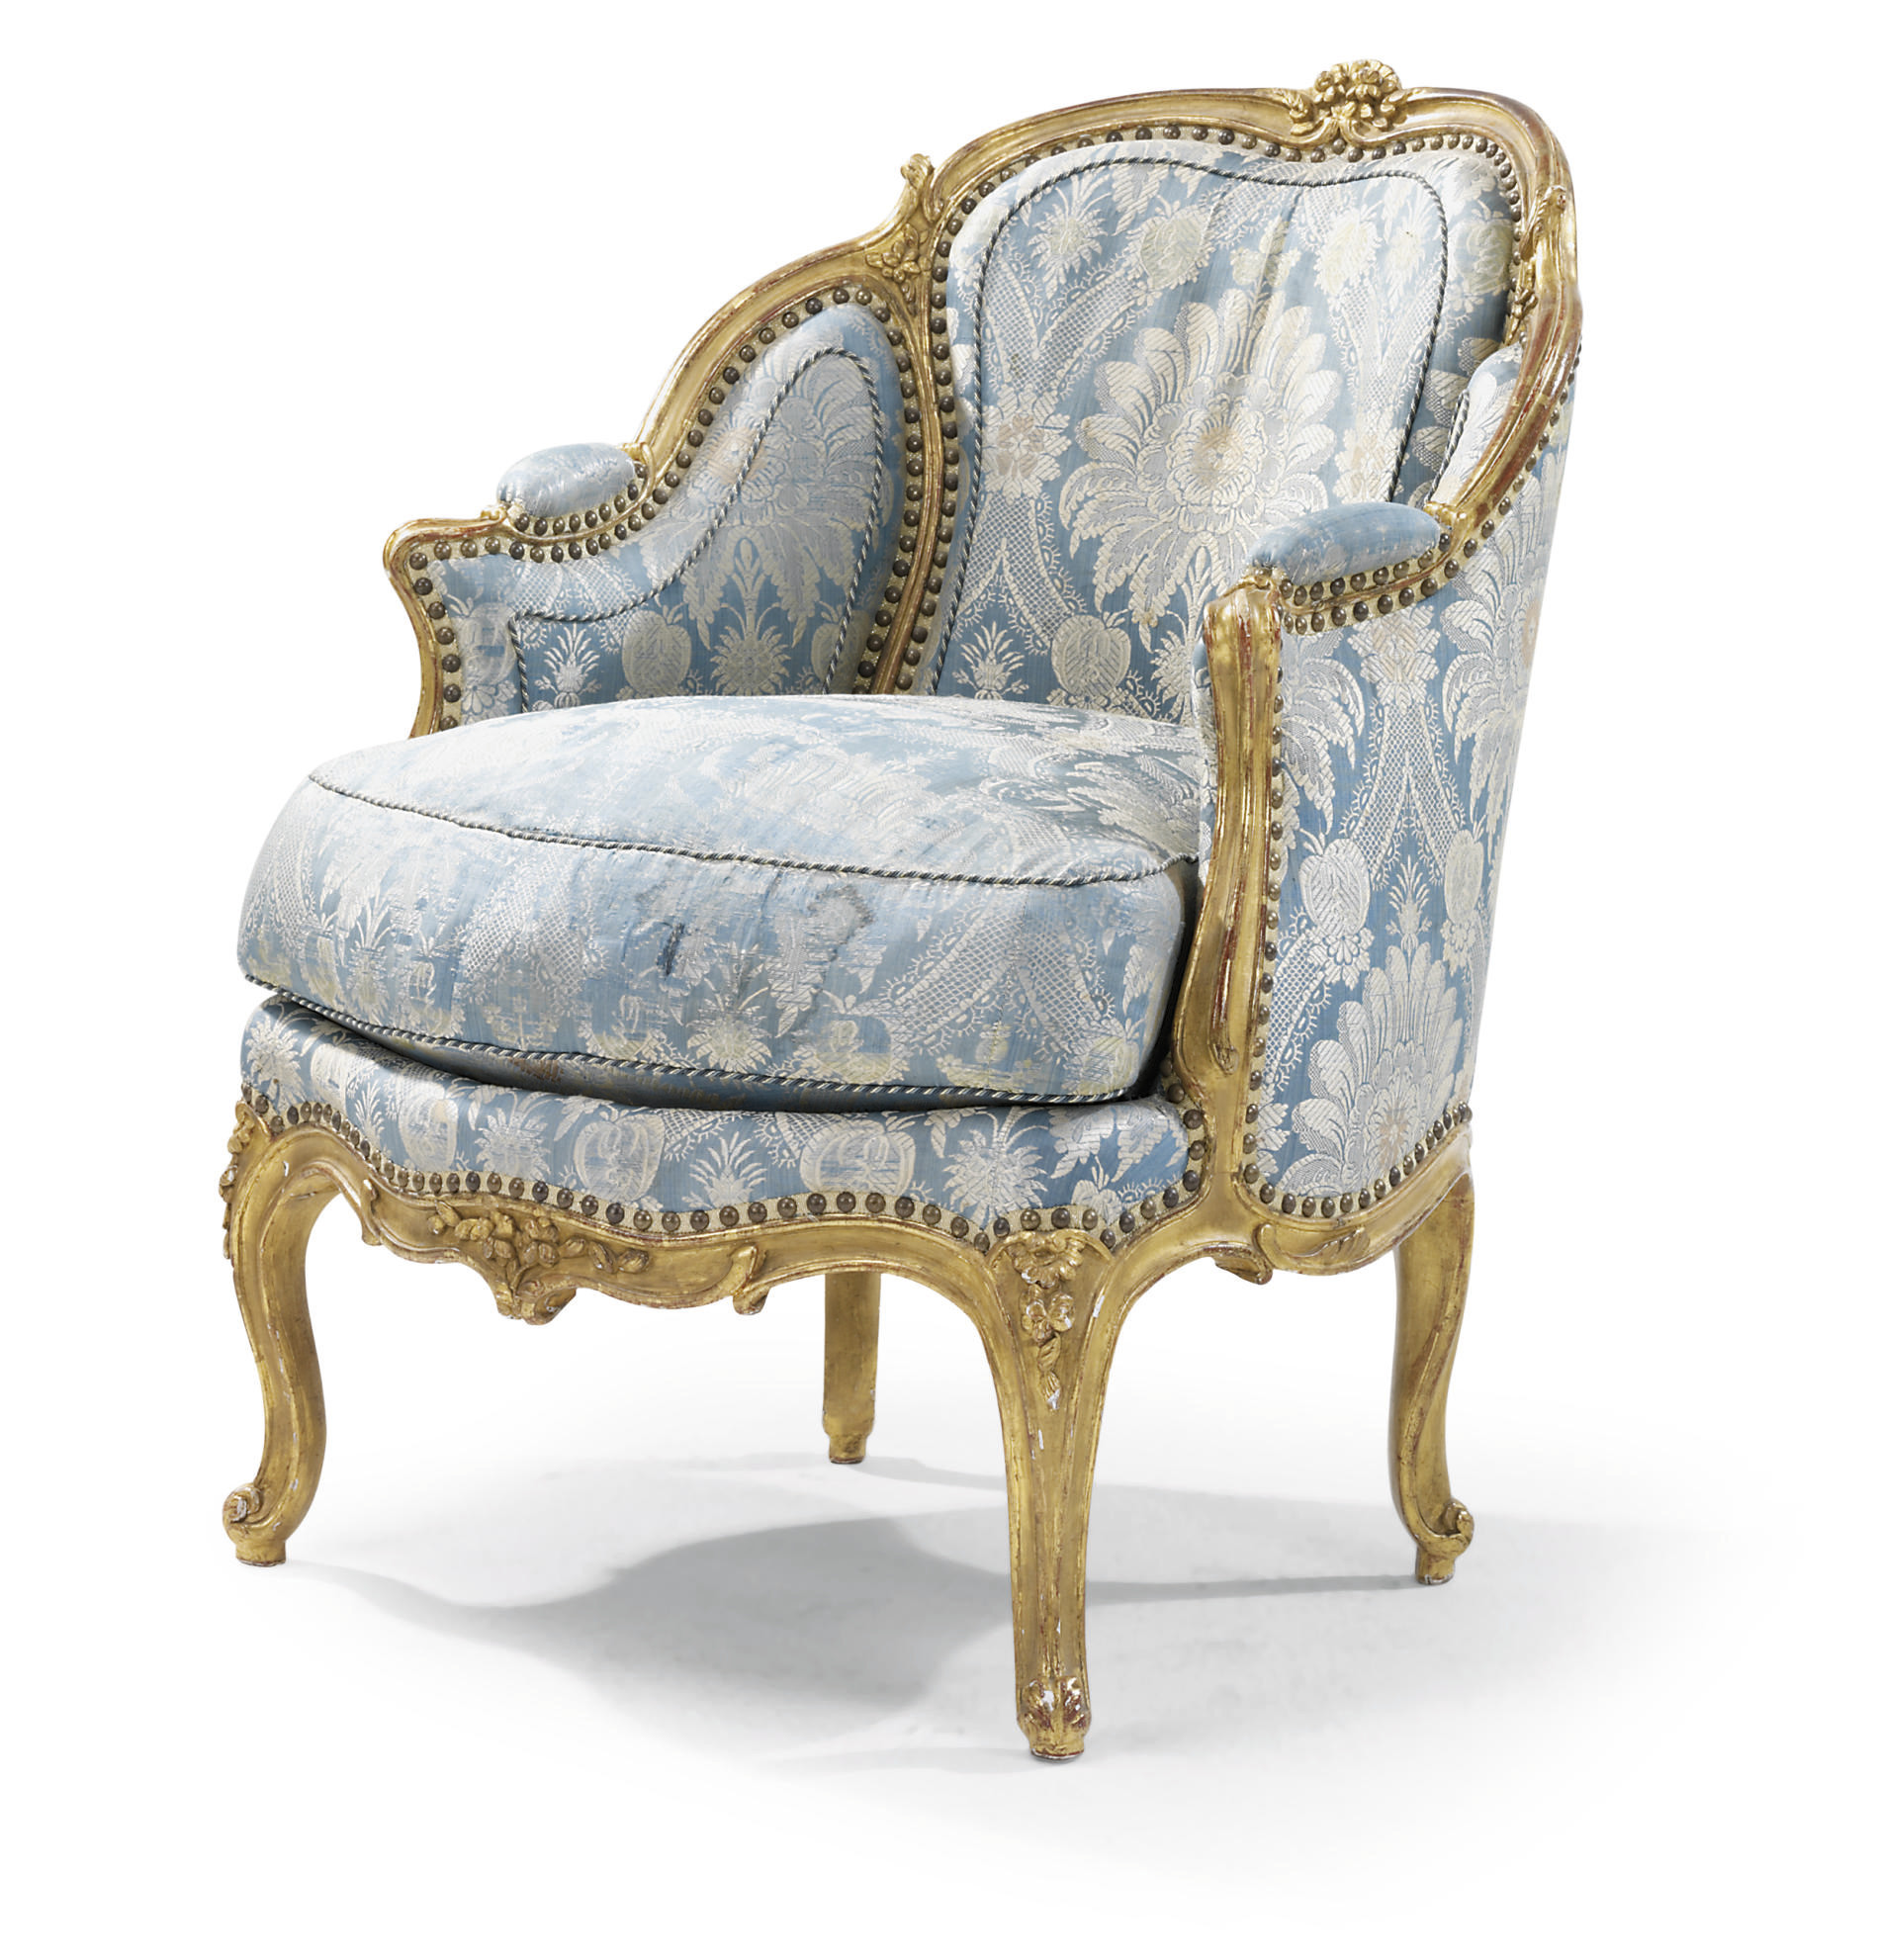 A LOUIS XV CARVED AND GILTWOOD BERGERE EN CABRIOLET